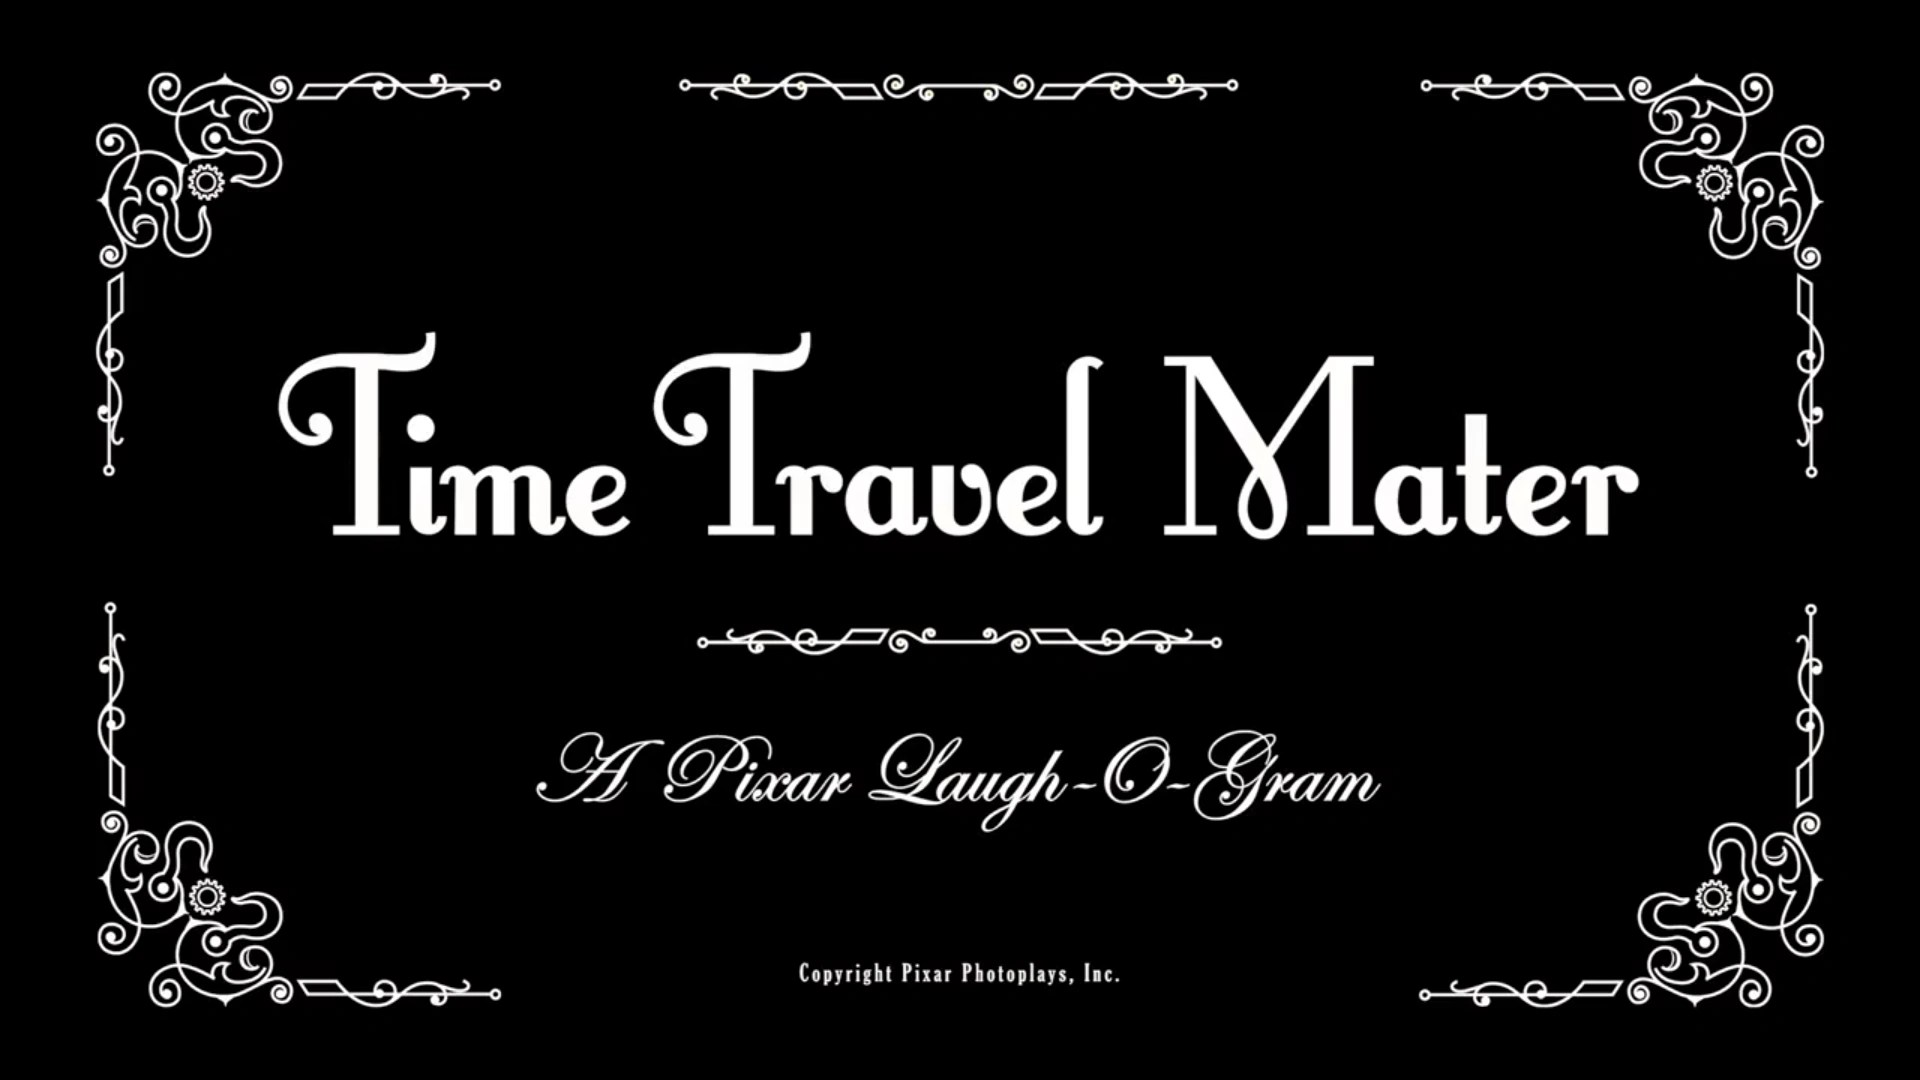 Pixar Cars Wallpaper Border Time Travel Mater Pixar Wiki Fandom Powered By Wikia